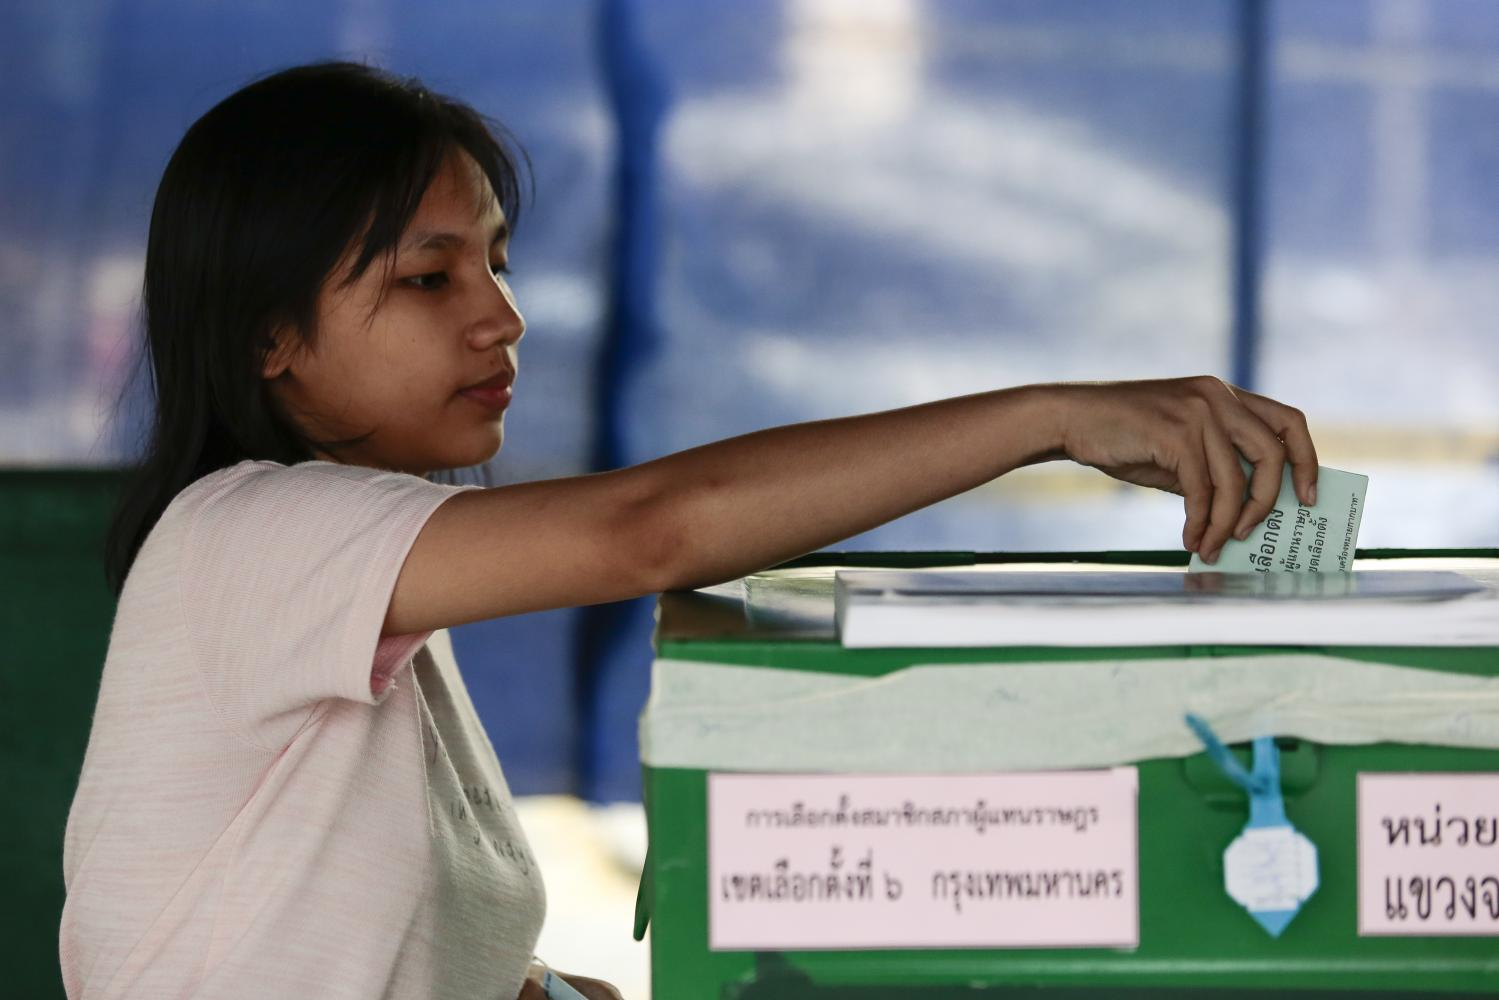 A woman casts her ballot at a polling station in Chatuchak district during the March general election. S&P Global Ratings raised its outlook on Thailand's sovereign credit rating to positive from stable, citing greater political stability. Patipat Janthong